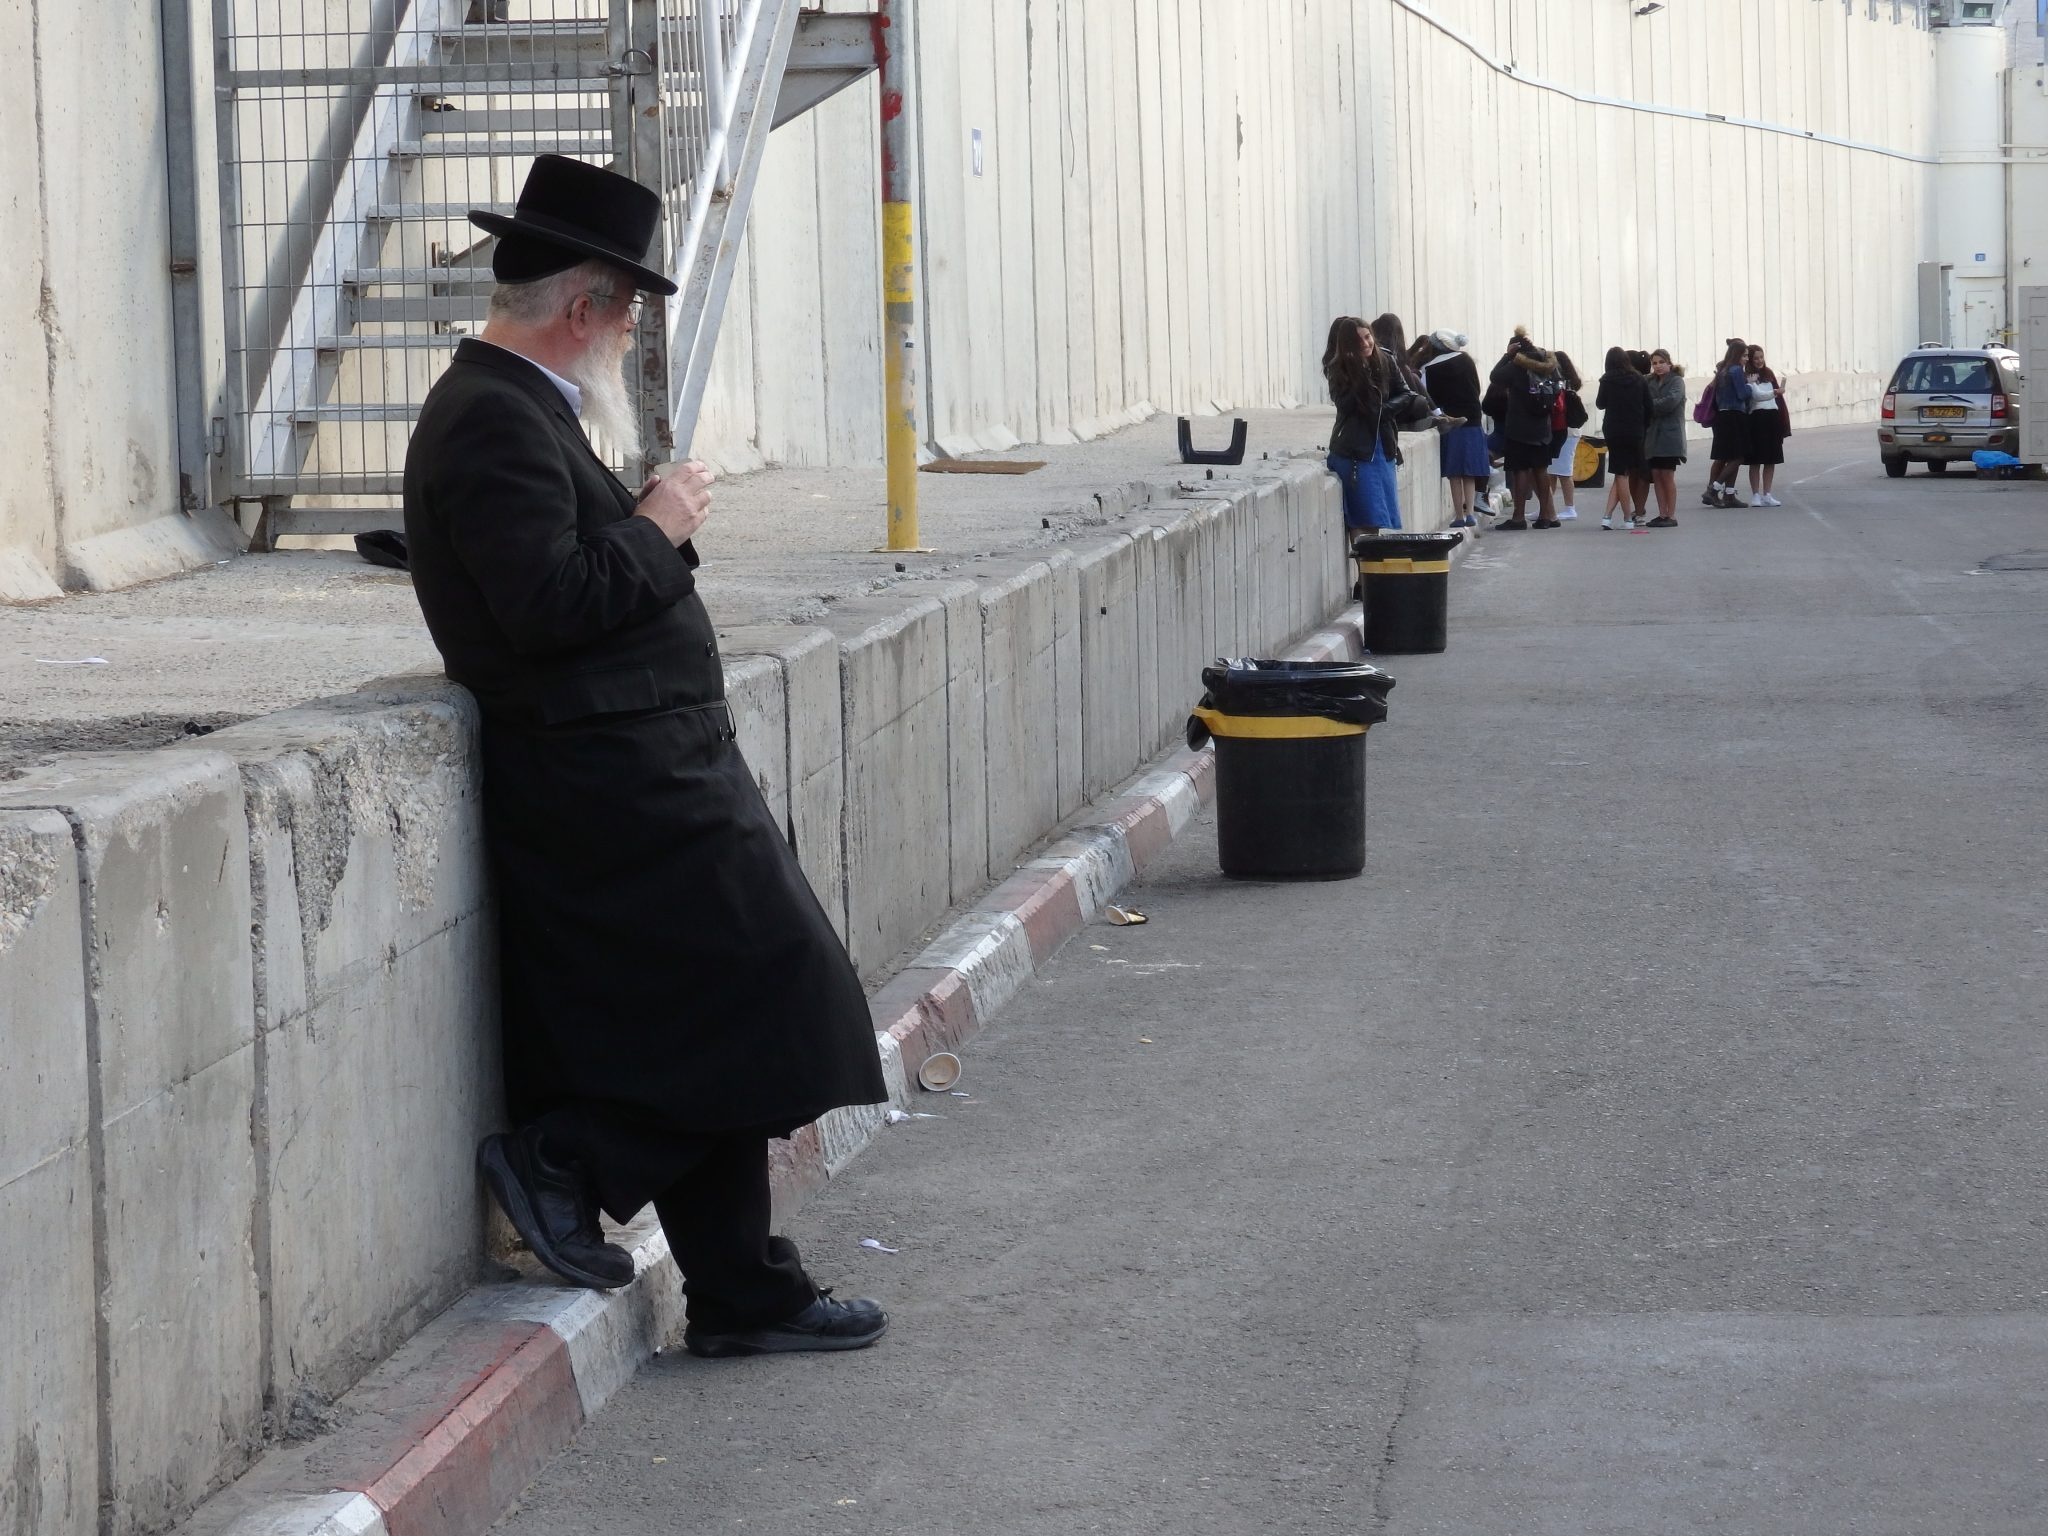 An Orthodox Jew takes a break outside Rachels Tomb